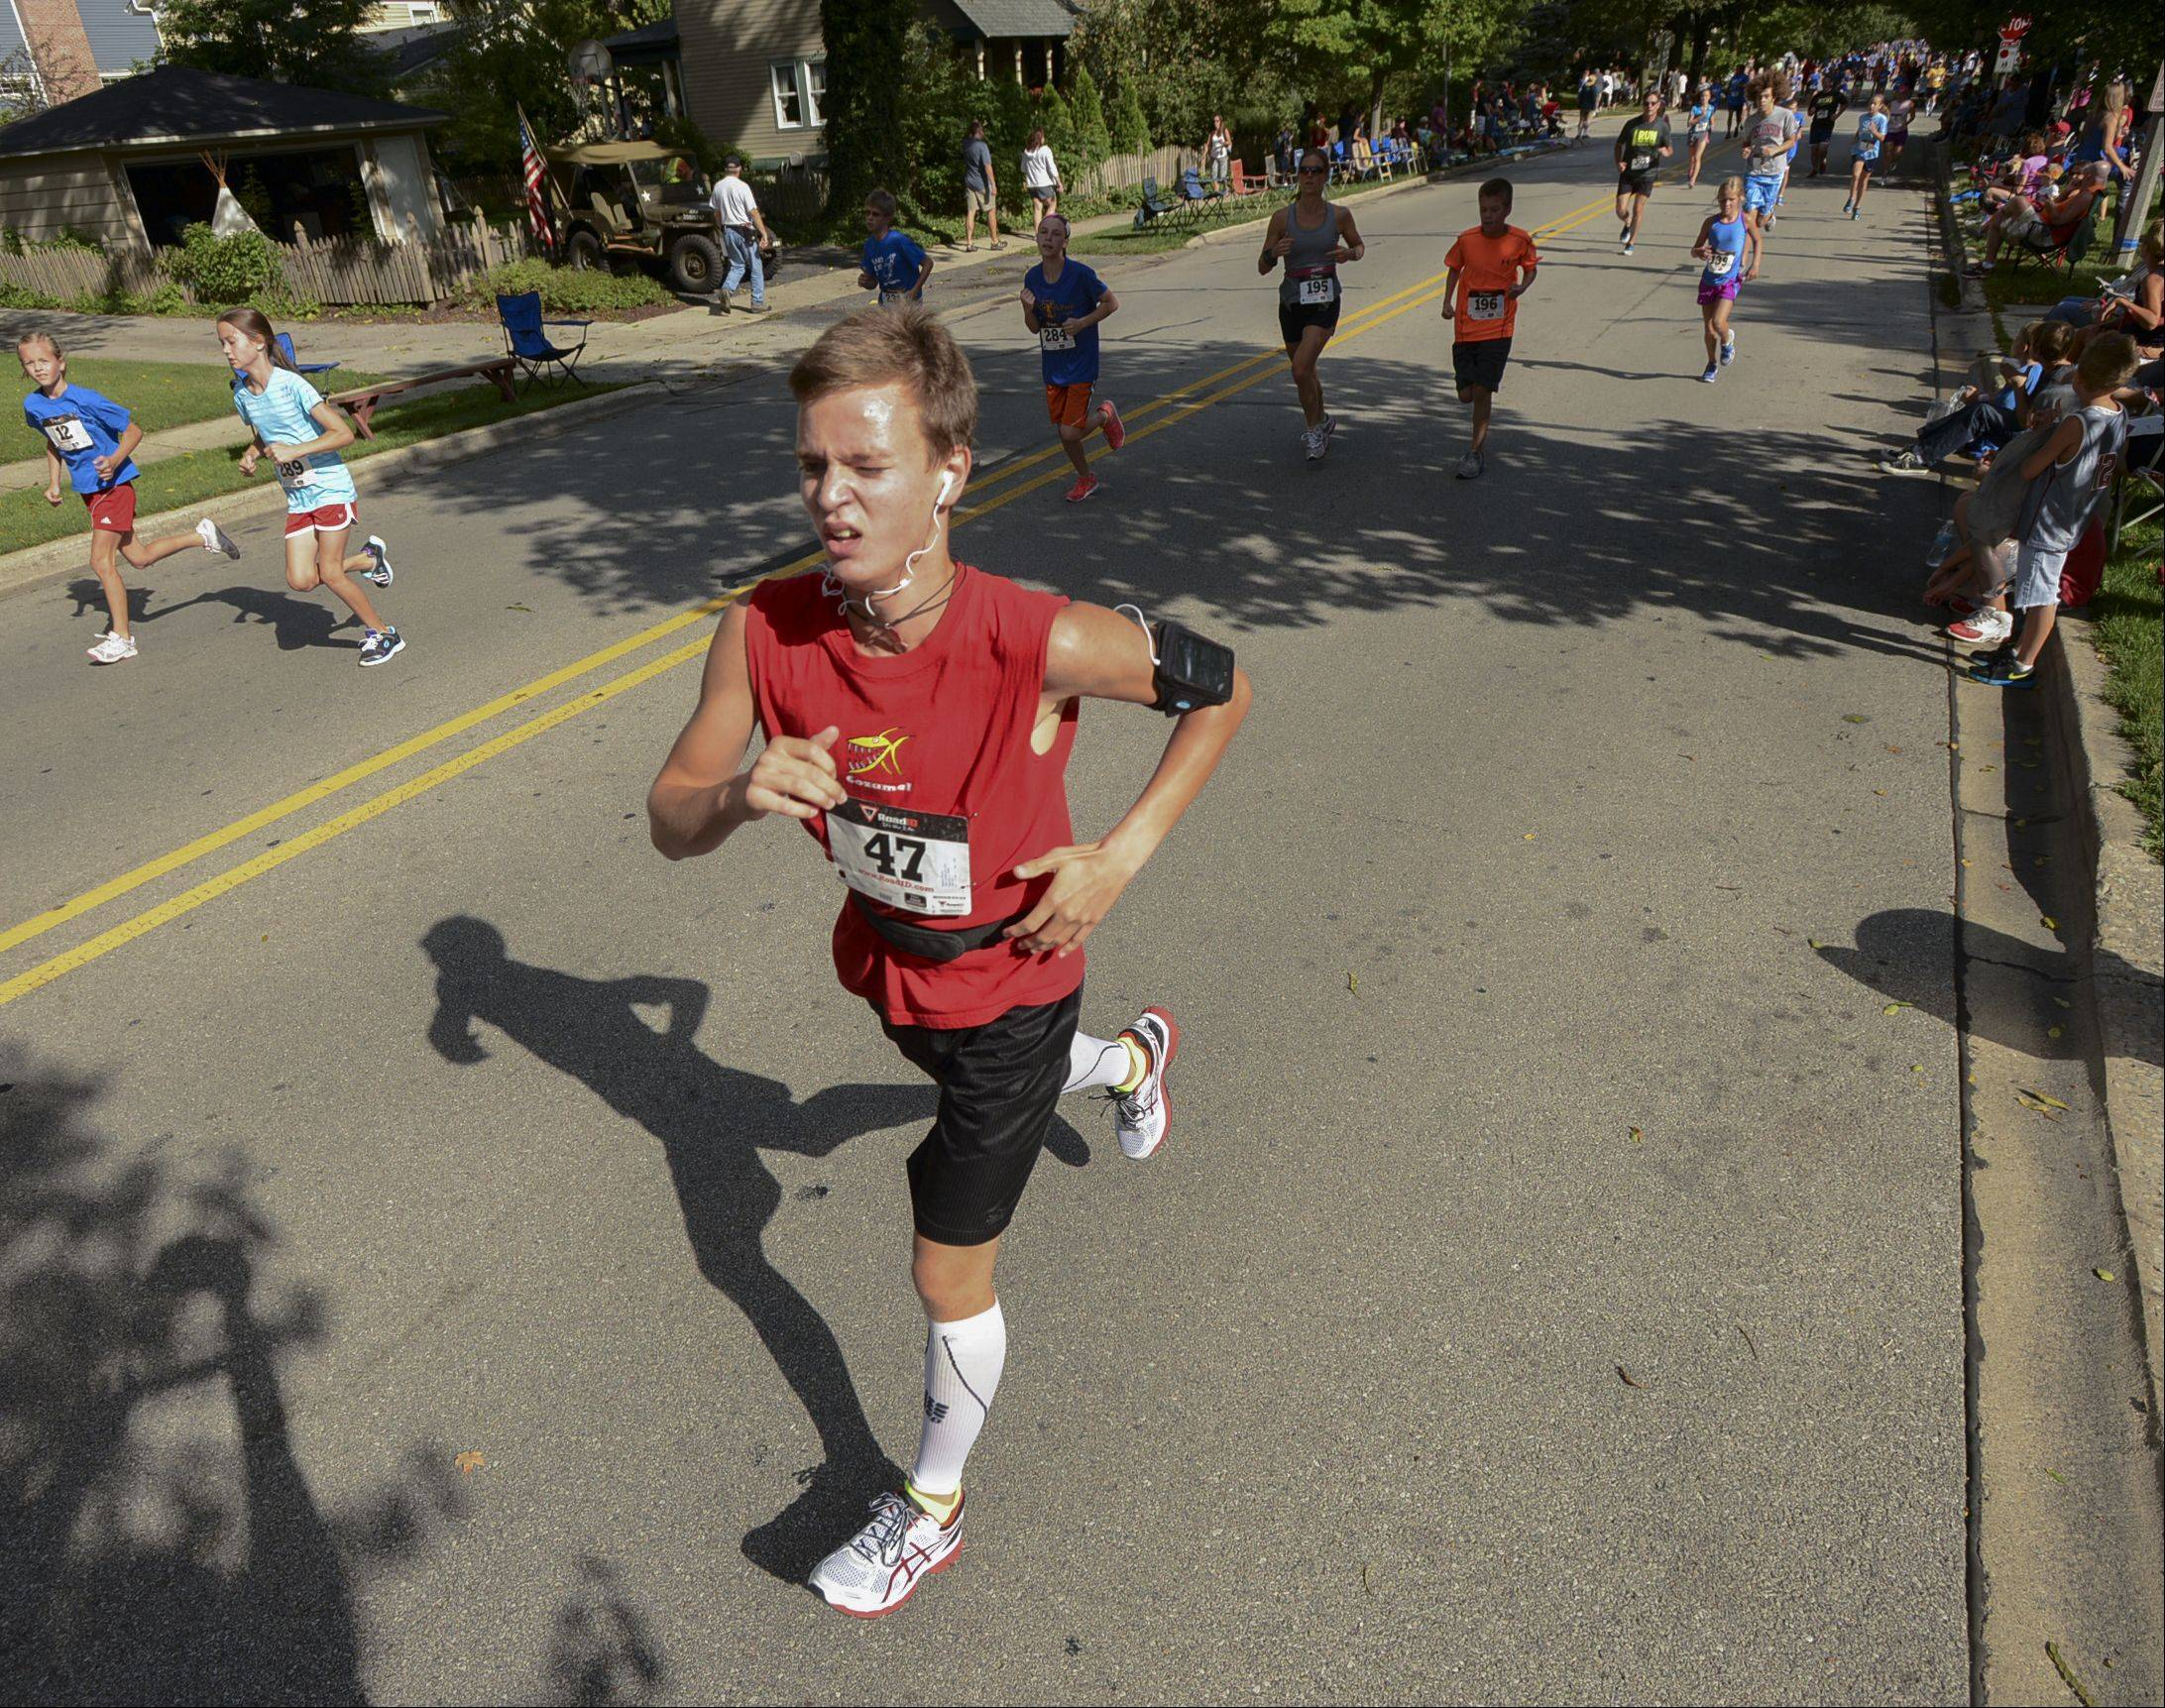 Runner participate in the Fling Mile during the Jaycees' Last Fling in Naperville, Monday.